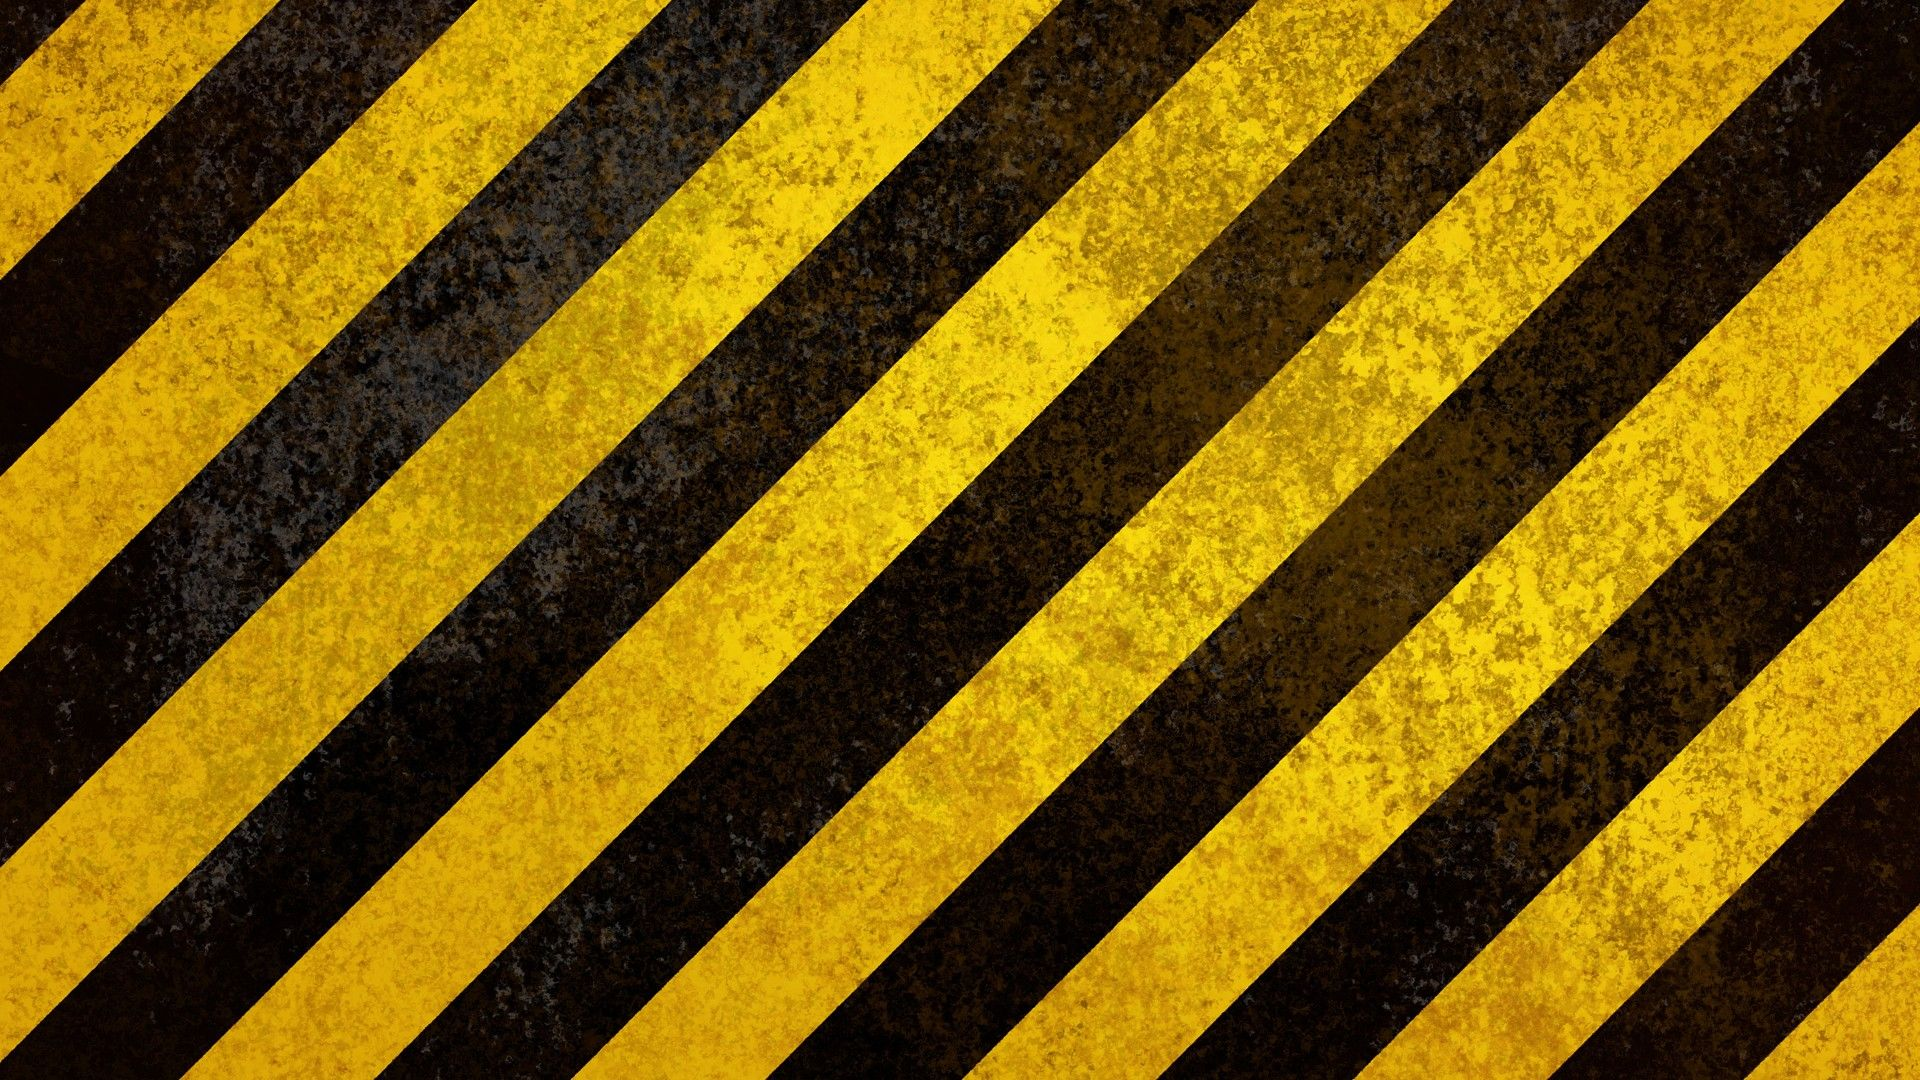 Grunge Textures Warning Stripes Hazard 1920x1080 Wallpaper